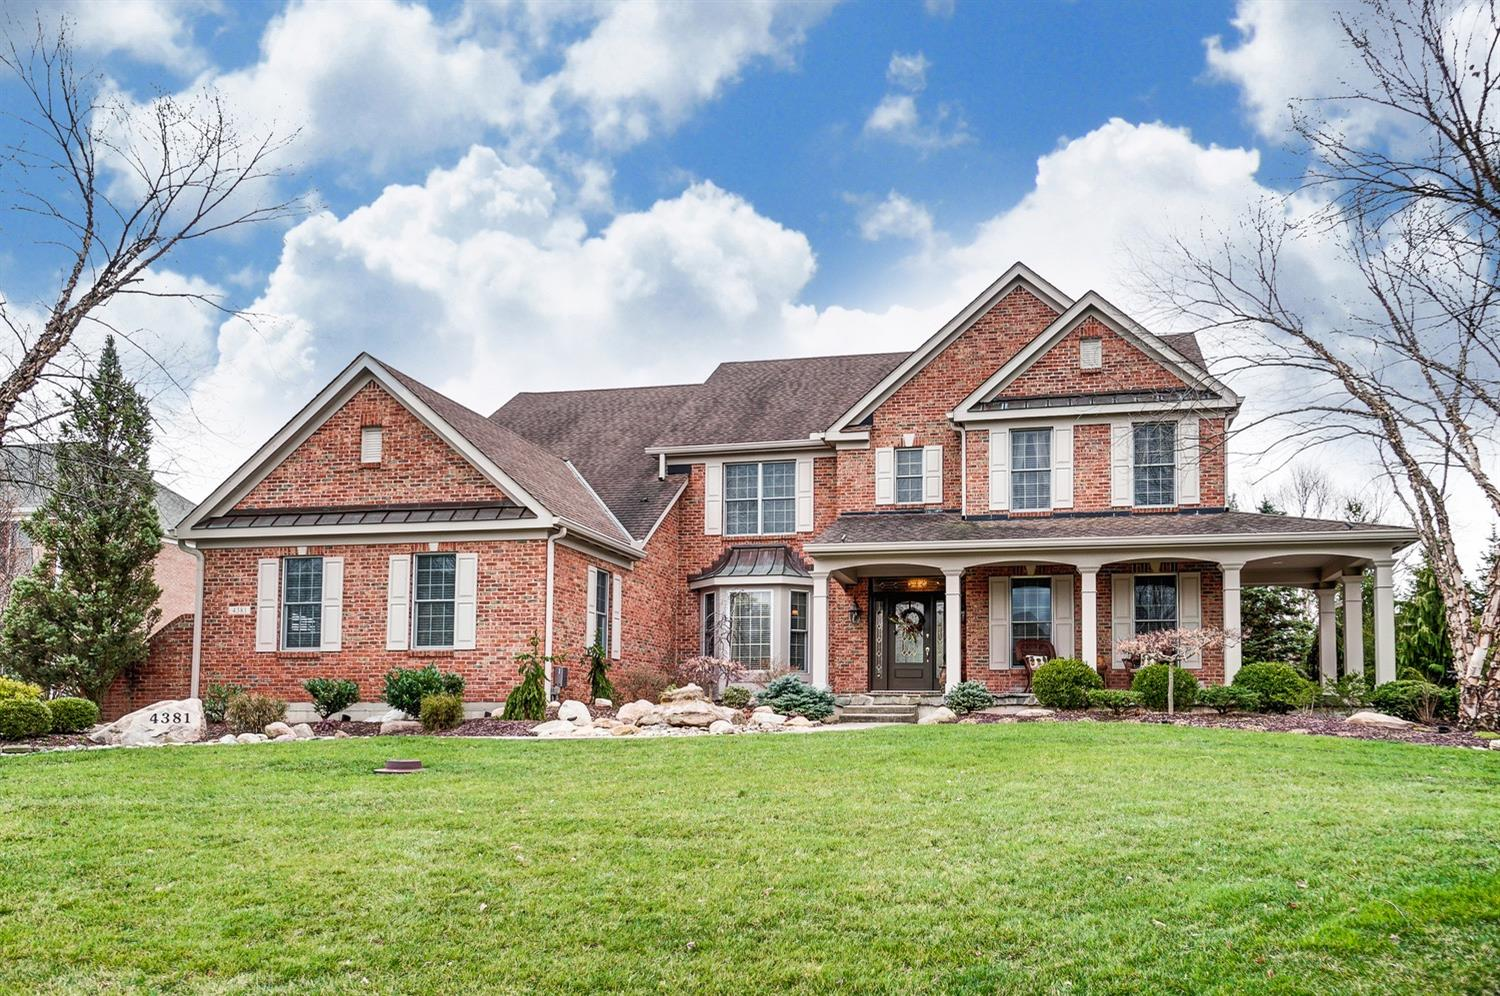 4381 Dorchester Ct West Chester OH